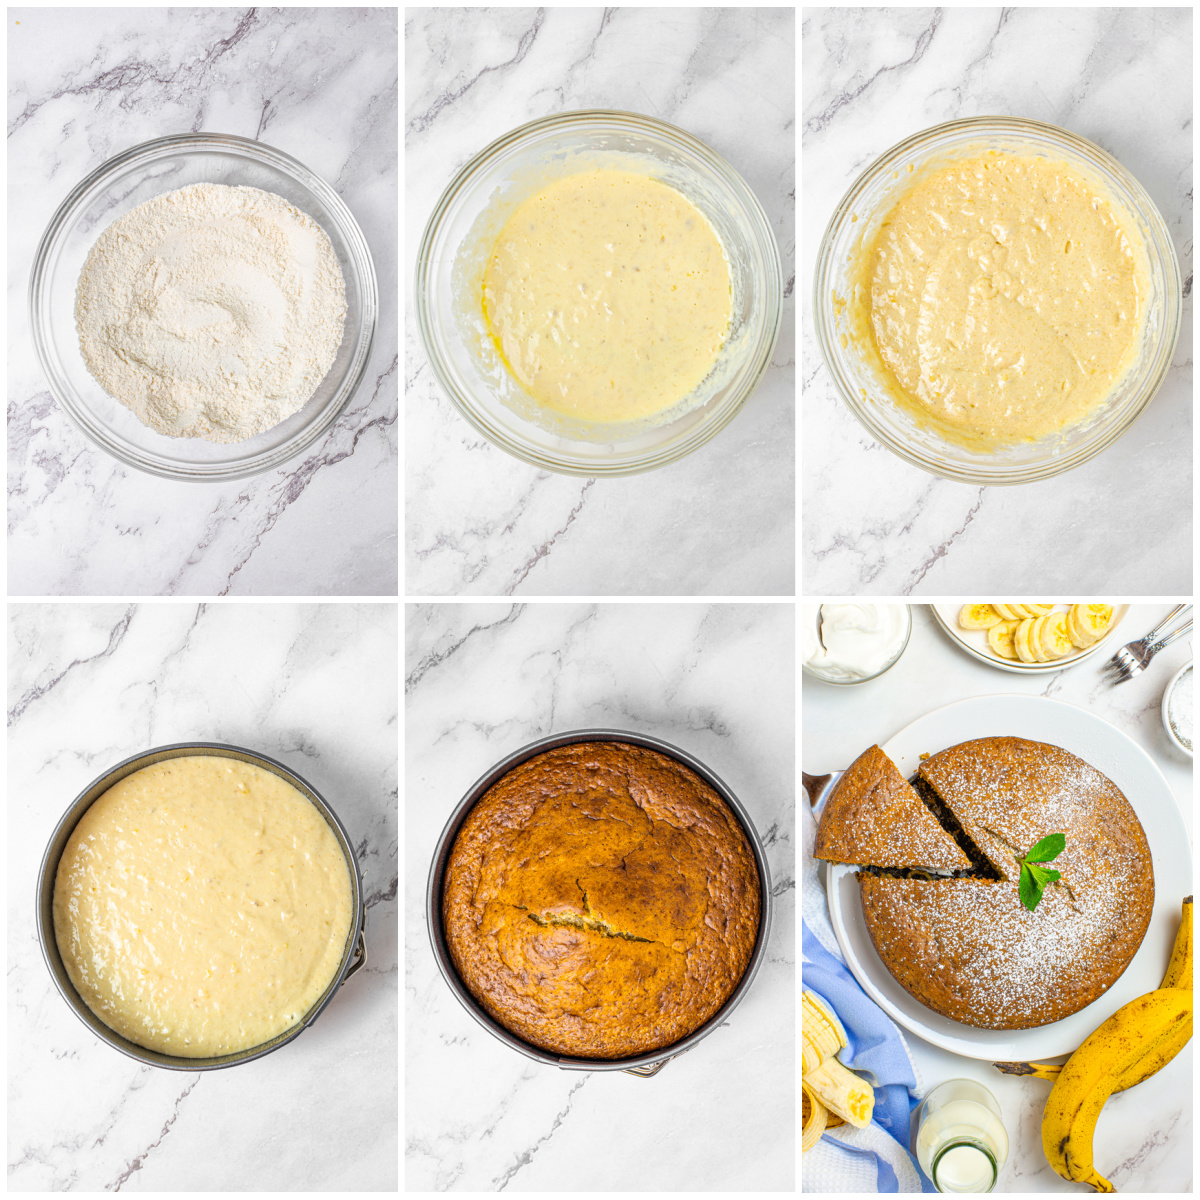 Step by step photos on how to make Banana Snacking Cake